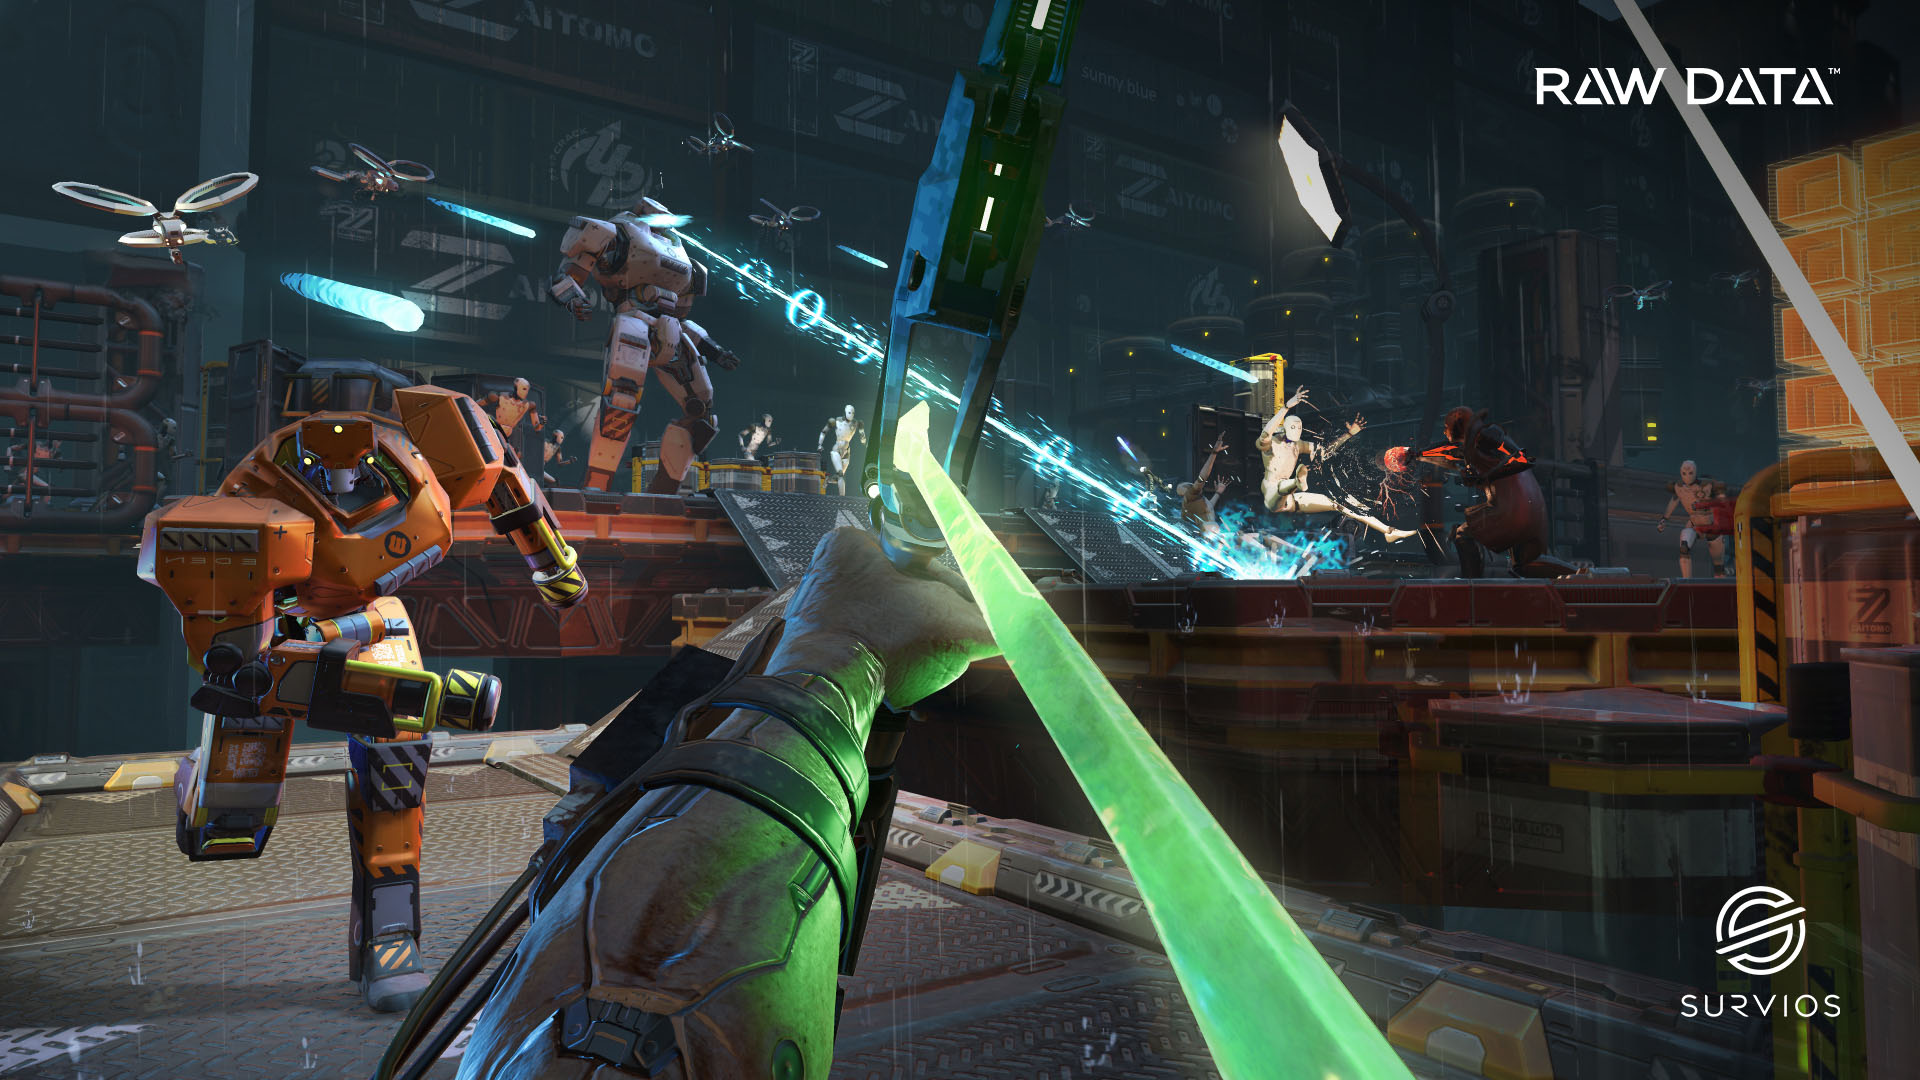 Survios' VR action game, Raw Data, is coming in October ...